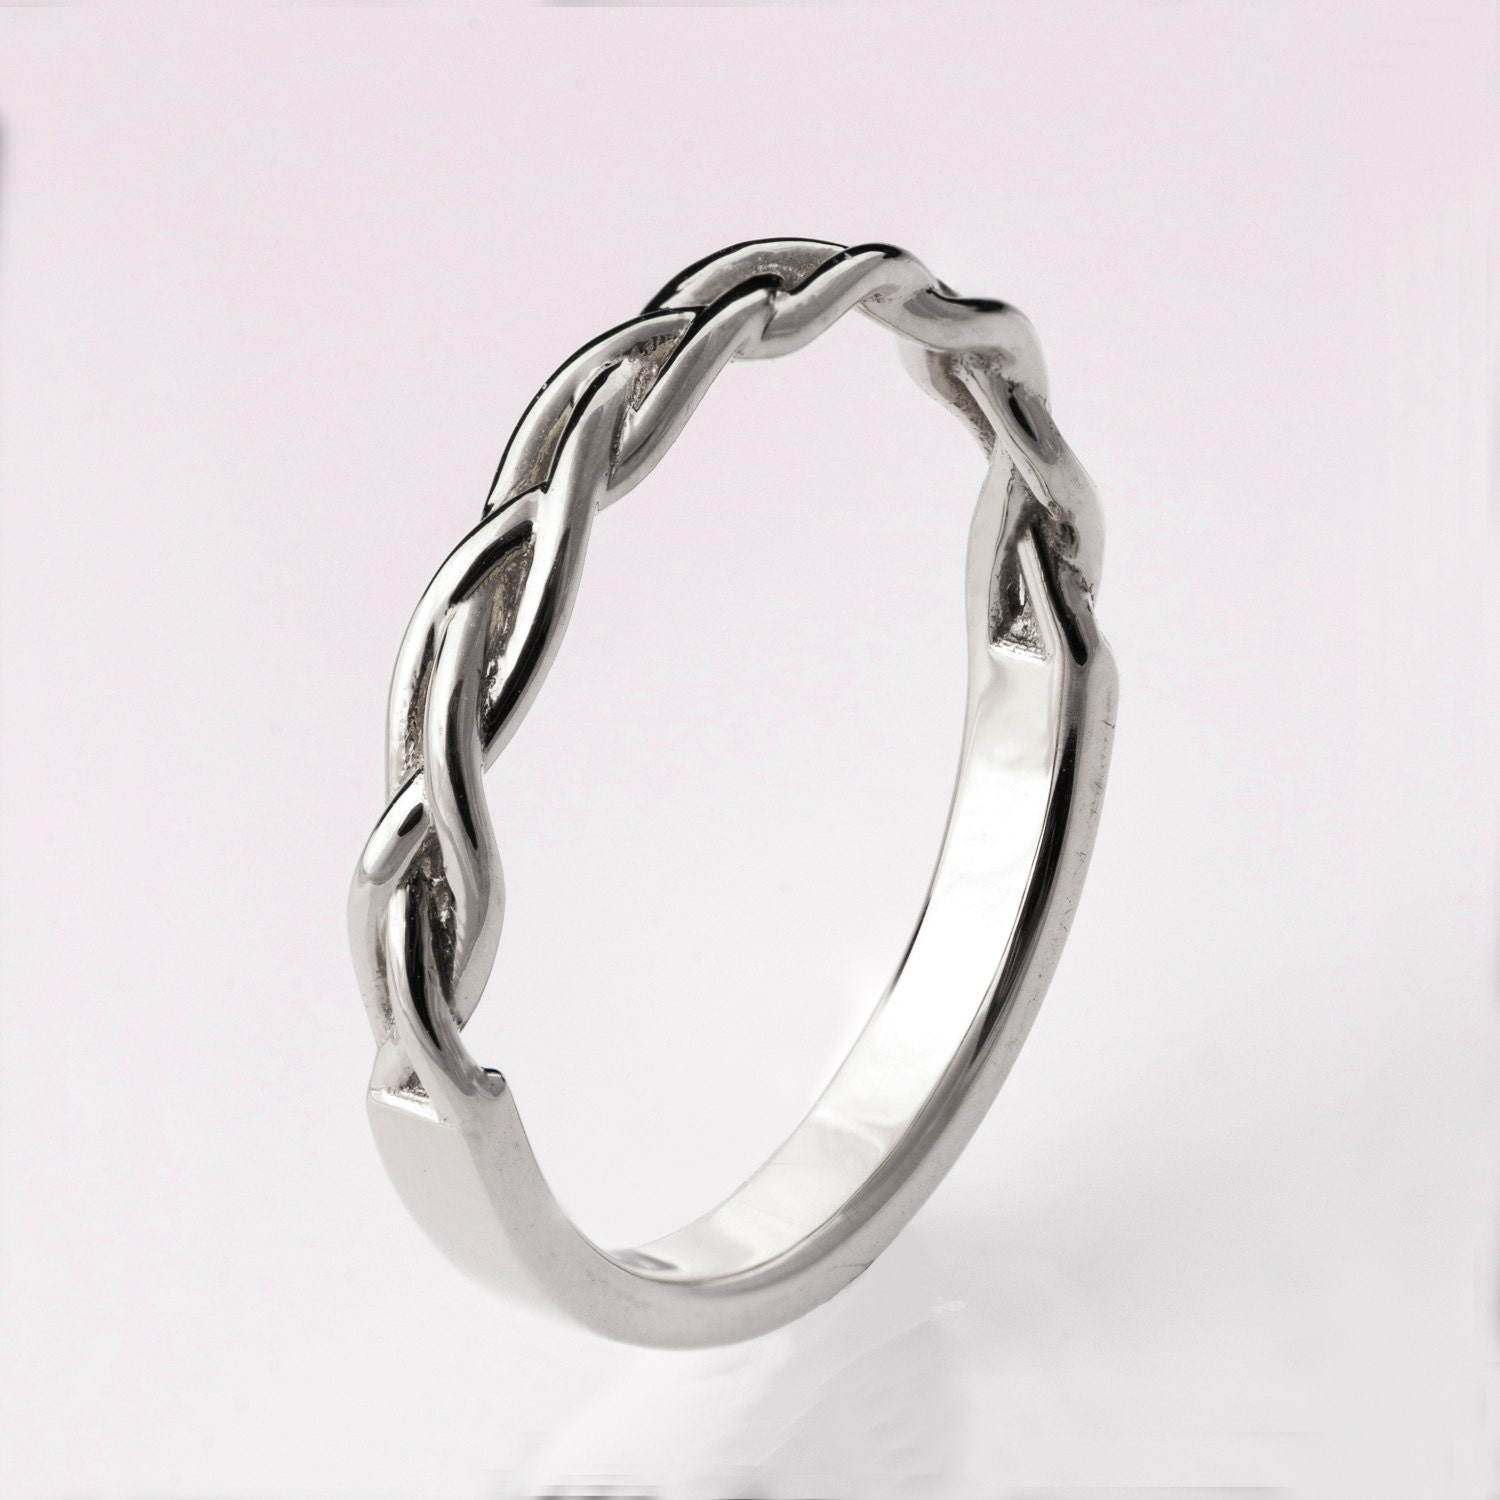 Braided Ring No 4 Platinum Ring Wedding Band Platinum